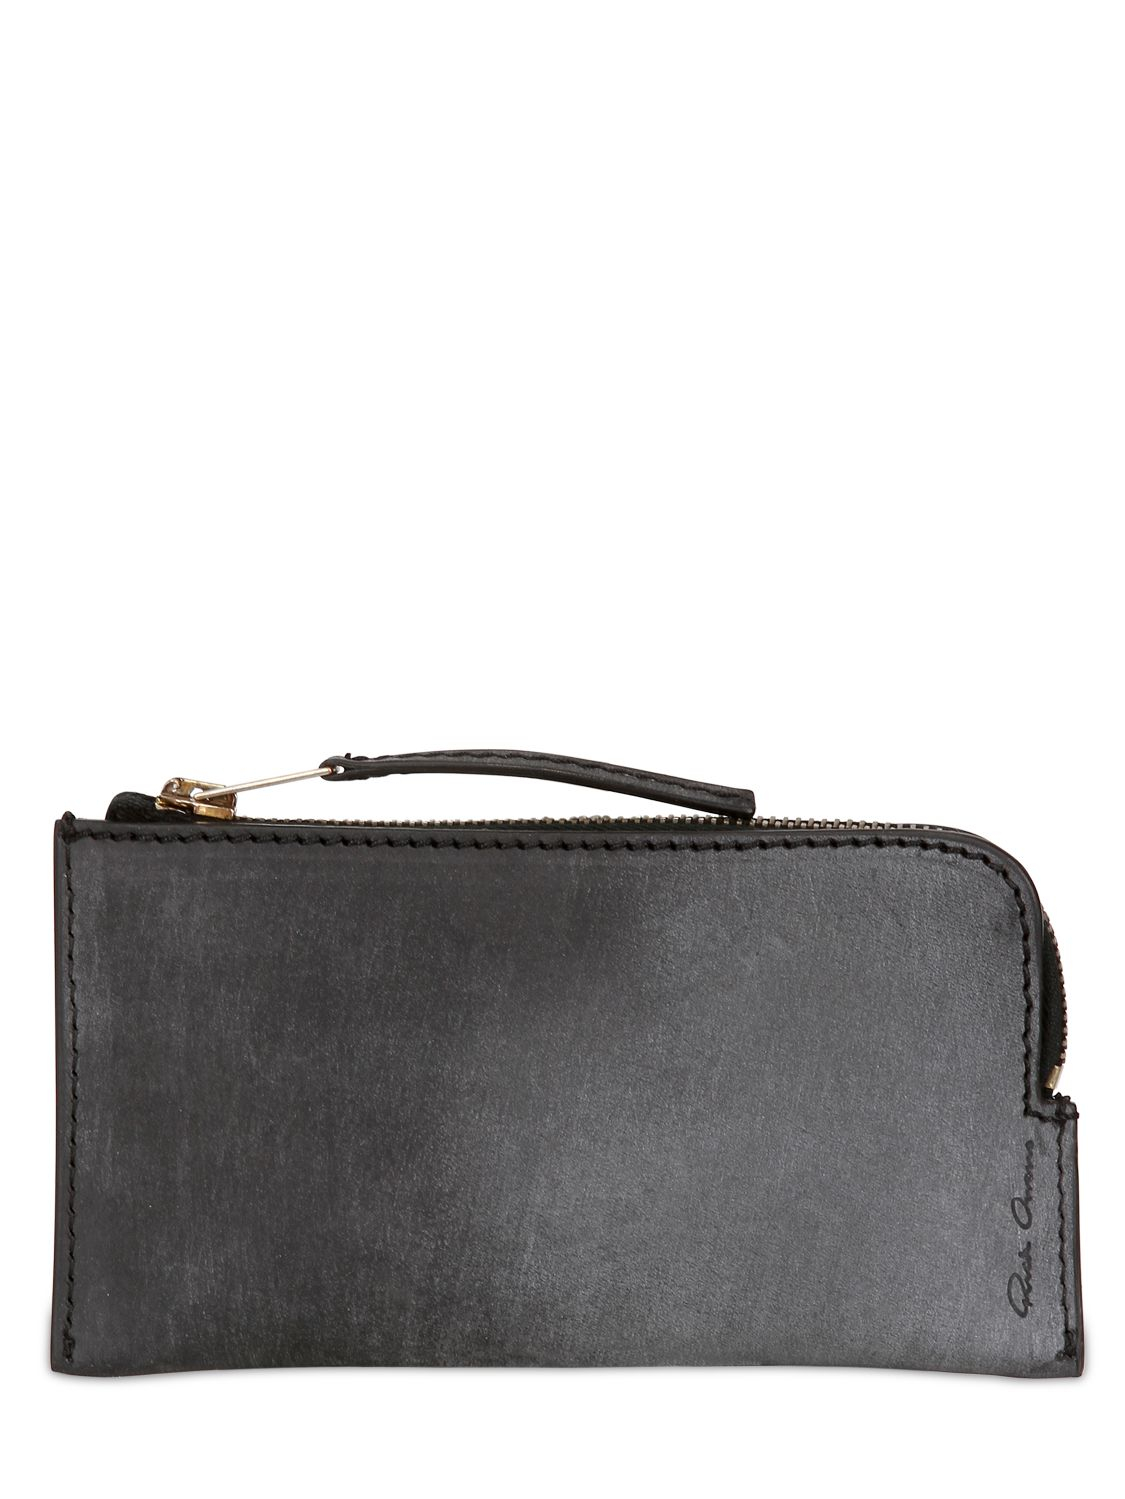 Lyst Rick Owens Zipped Leather Wallet In Black For Men